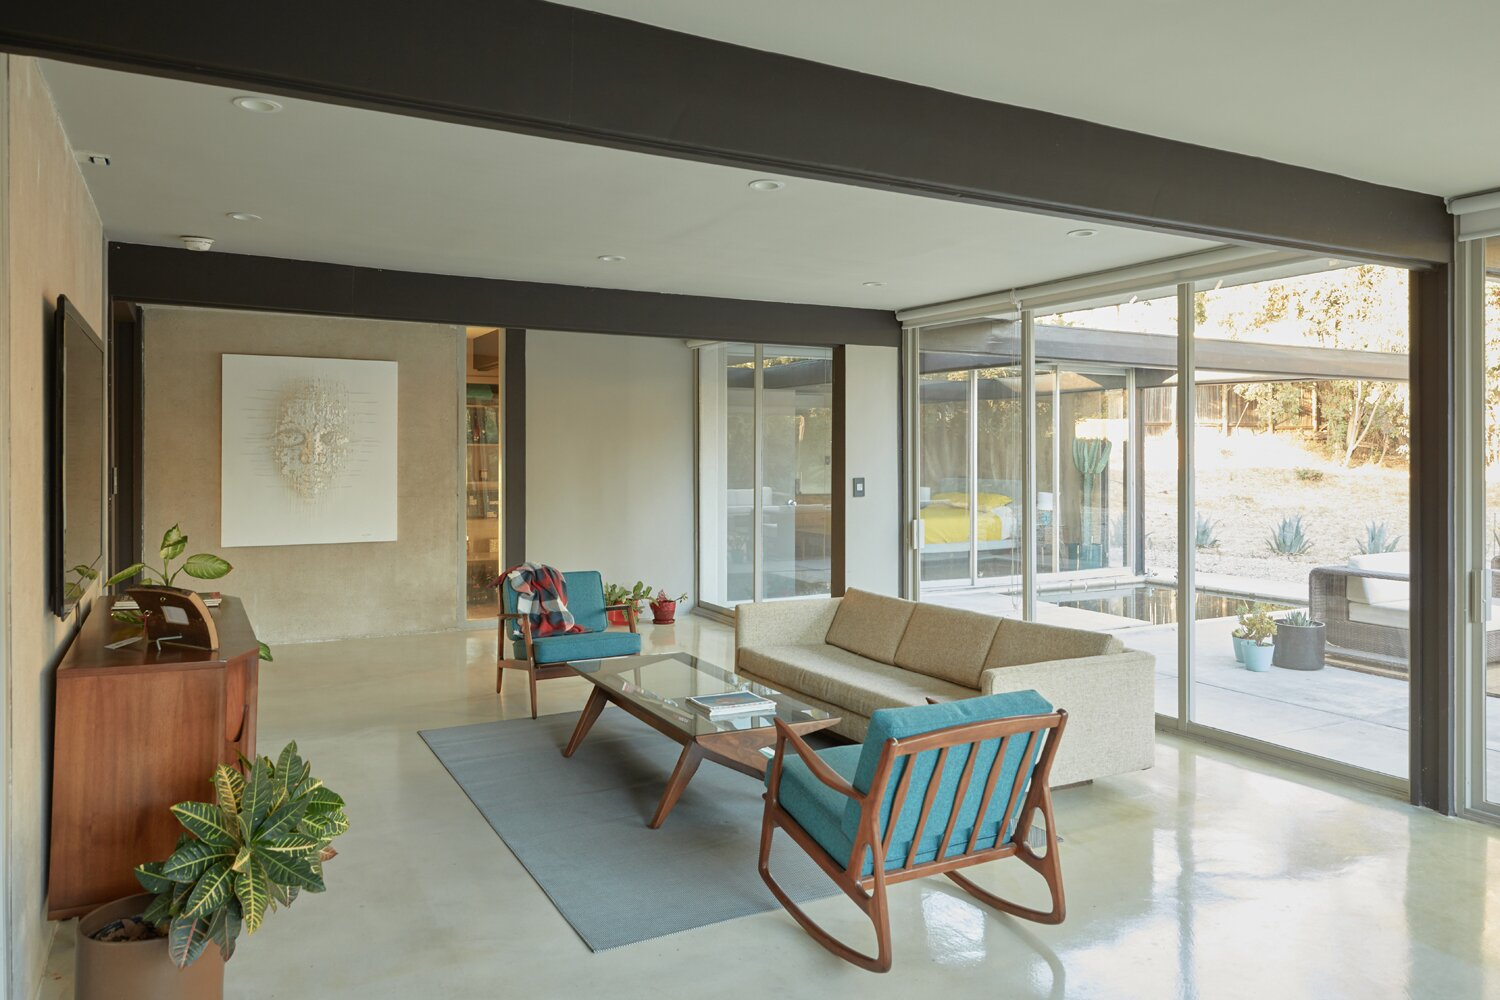 Living area of Whittier Midcentury Home